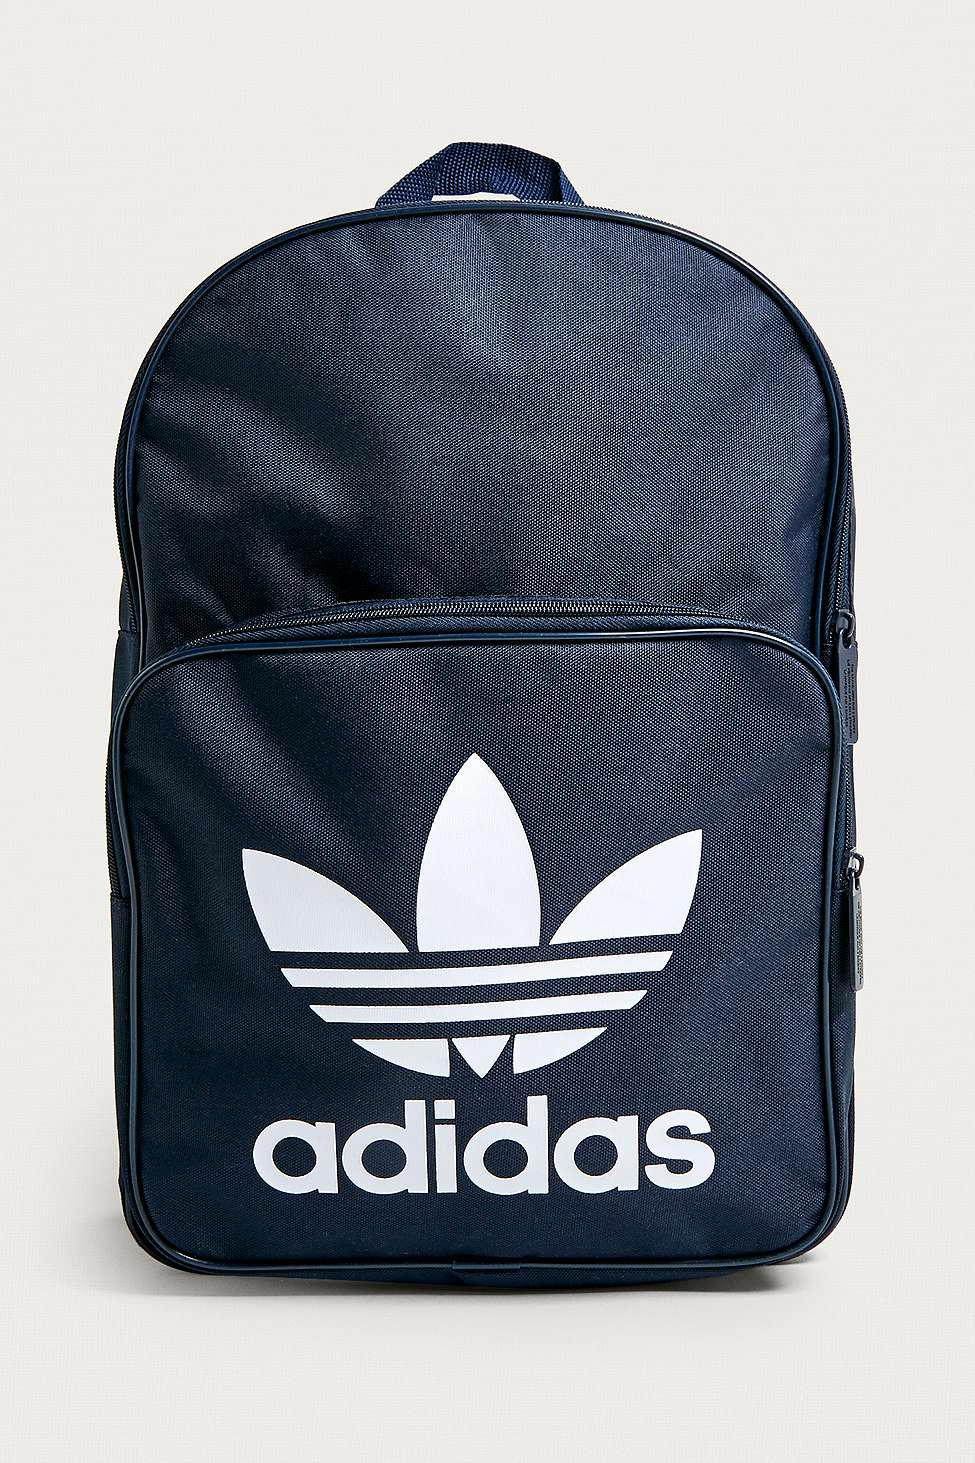 6e3dc8a97532 Adidas Trefoil Navy Backpack in Blue for Men - Lyst